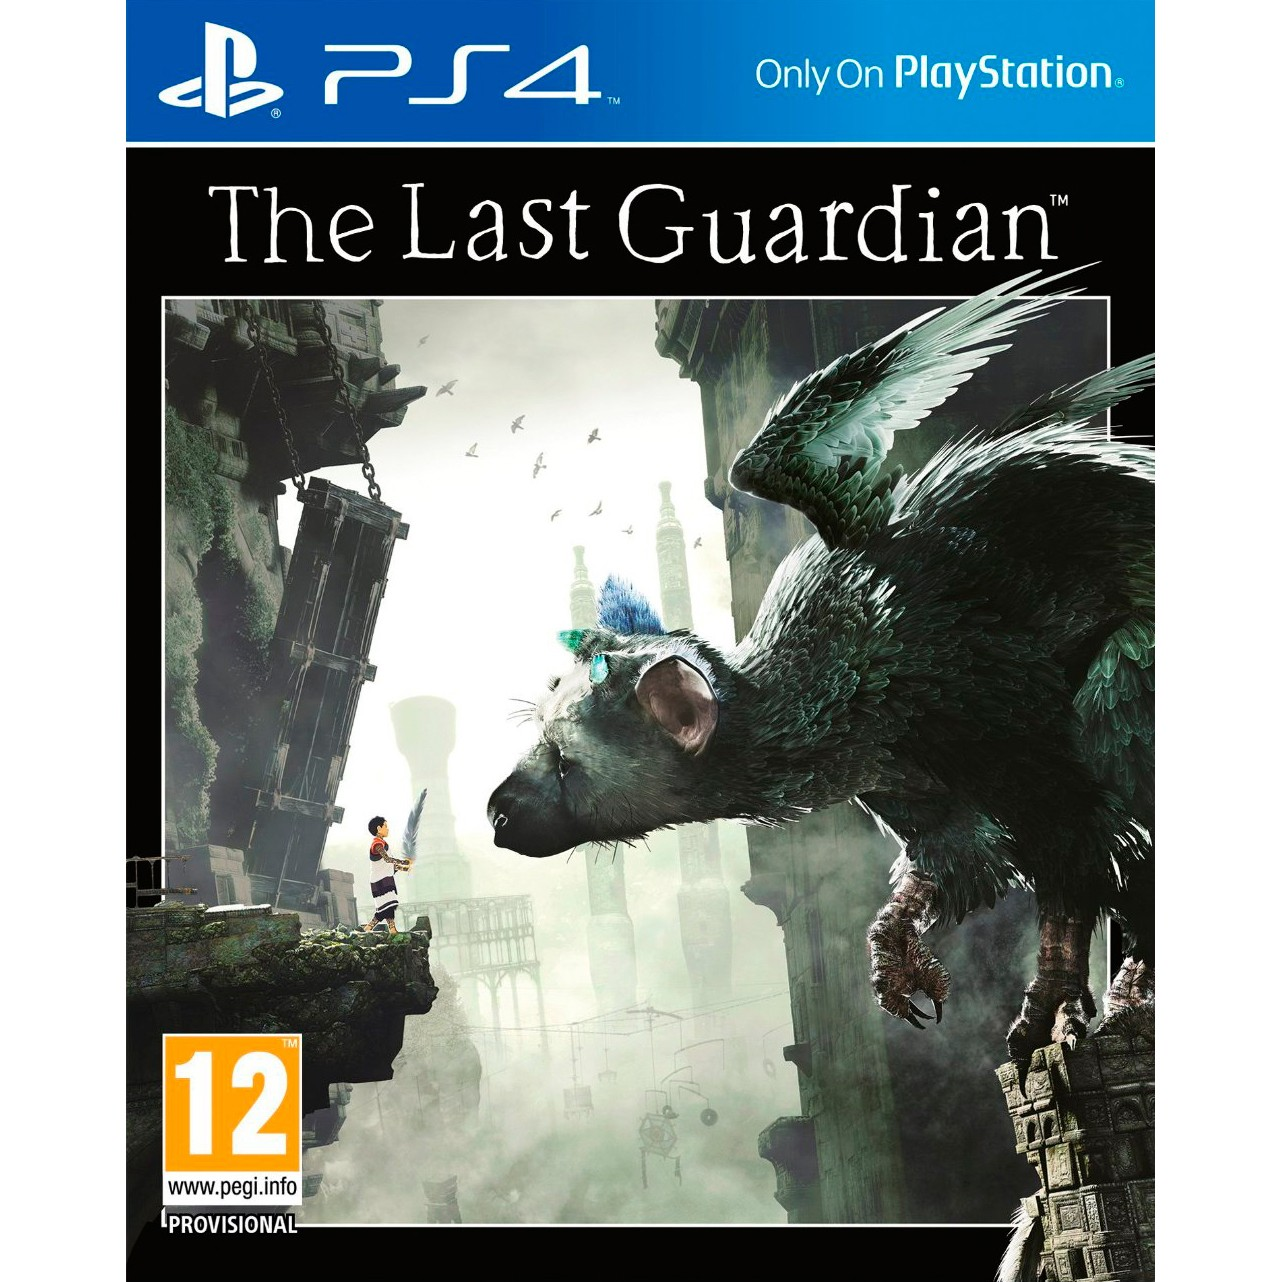 1004555 : The Last Guardian (PS4)